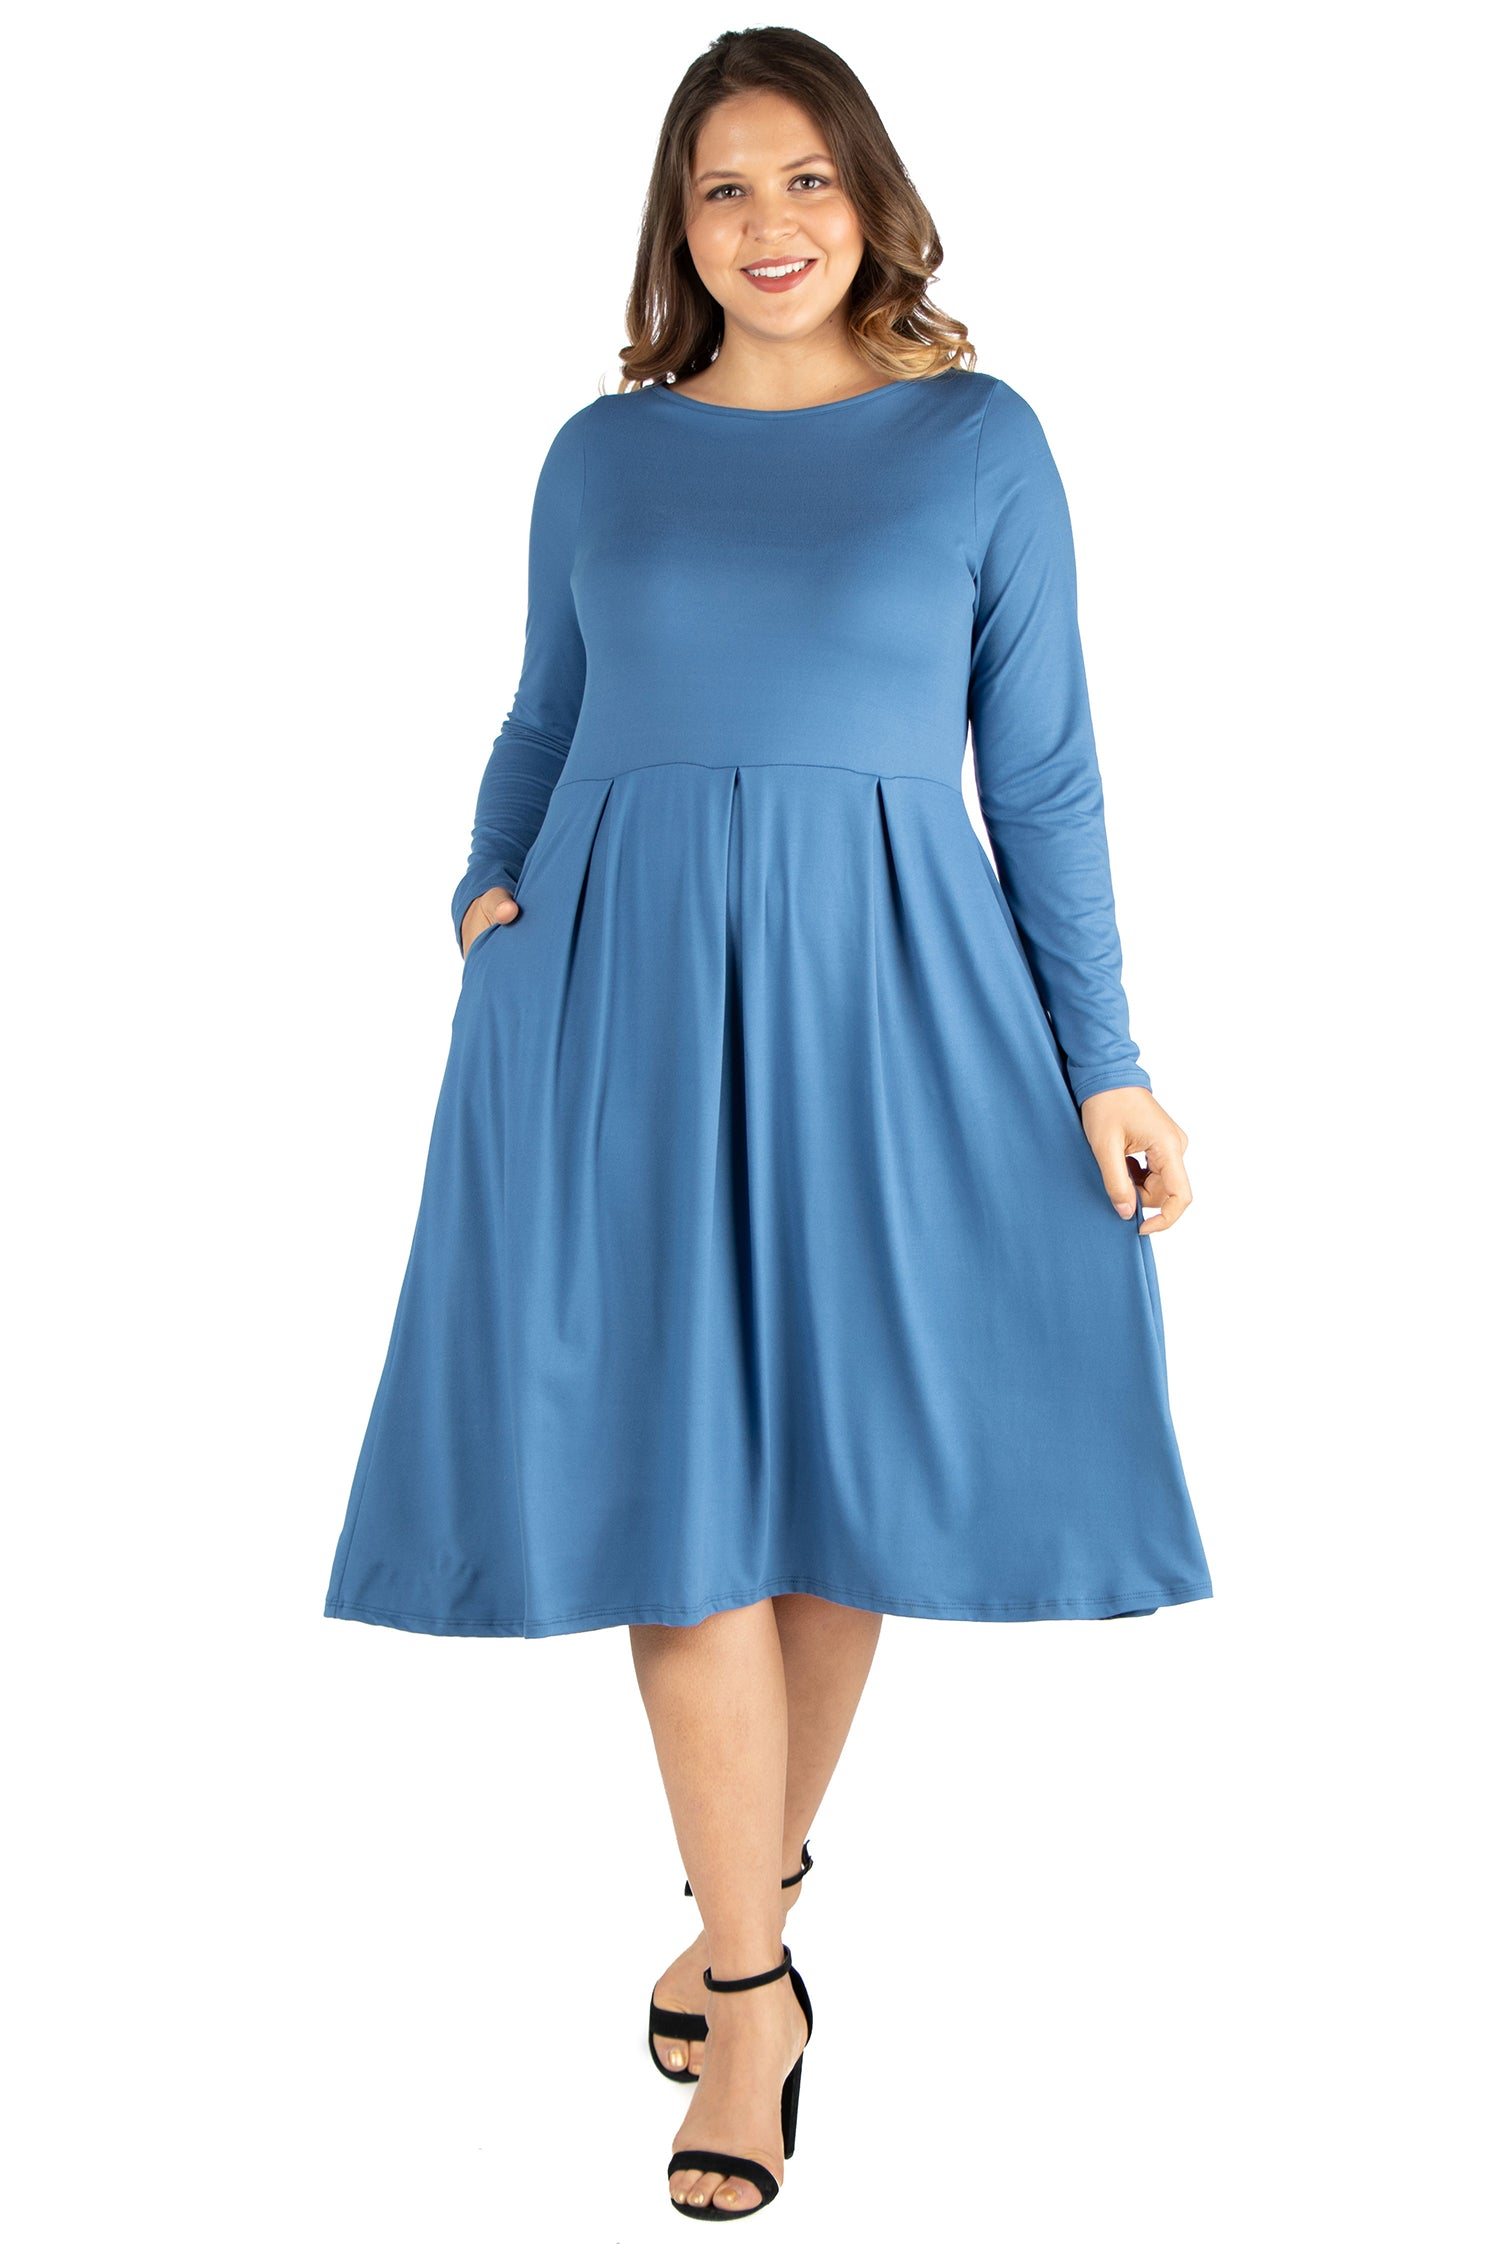 24seven Comfort Apparel Long Sleeve Fit and Flare Plus Size Midi Dress-DRESSES-24Seven Comfort Apparel-INDIGO-1X-24/7 Comfort Apparel